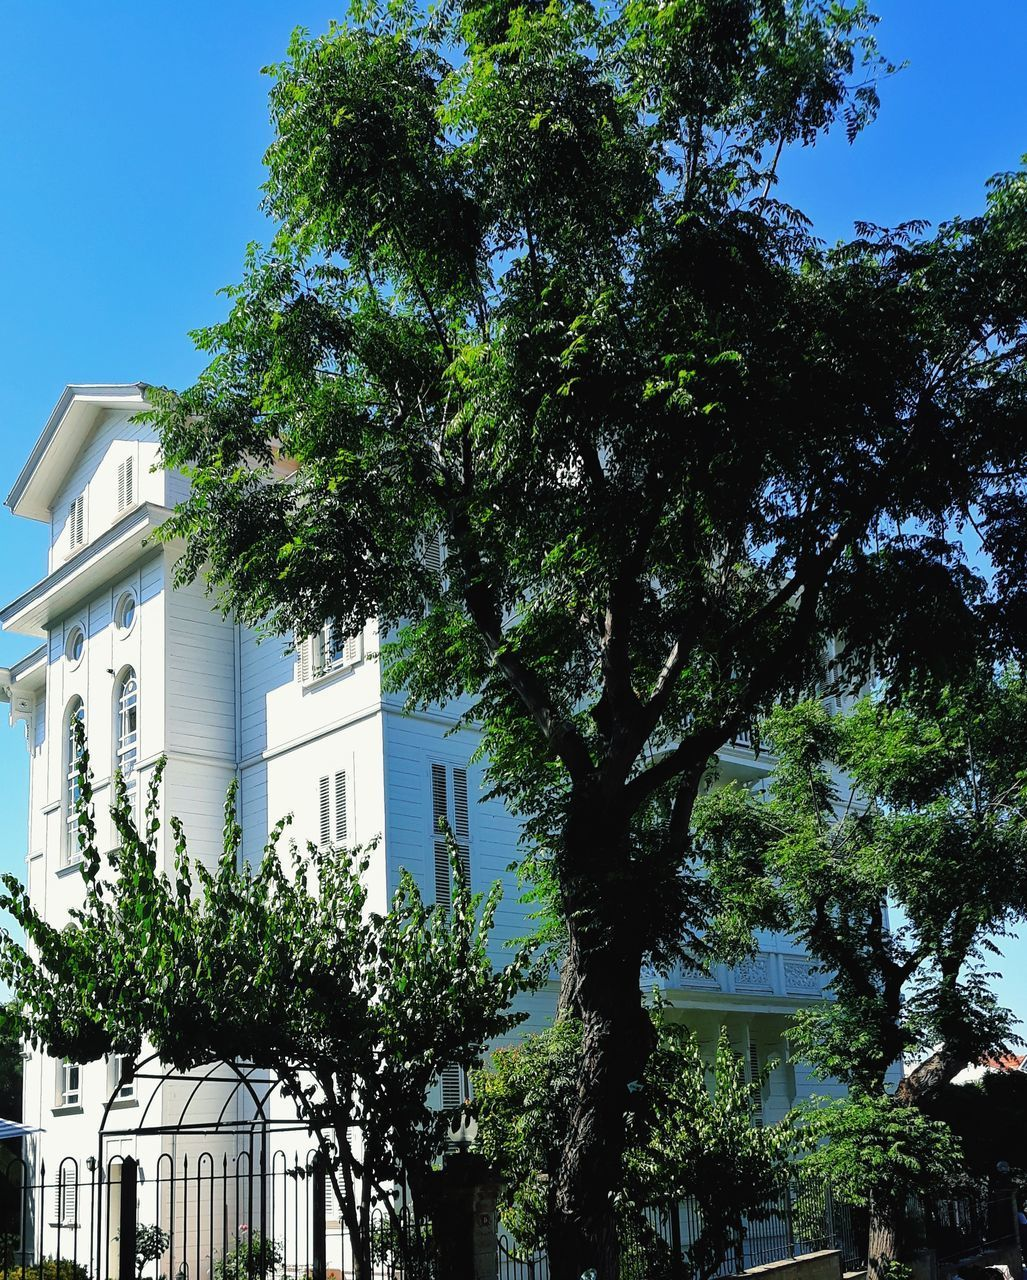 tree, plant, built structure, architecture, building exterior, building, sky, growth, nature, day, no people, low angle view, outdoors, clear sky, green color, sunlight, city, residential district, house, branch, place